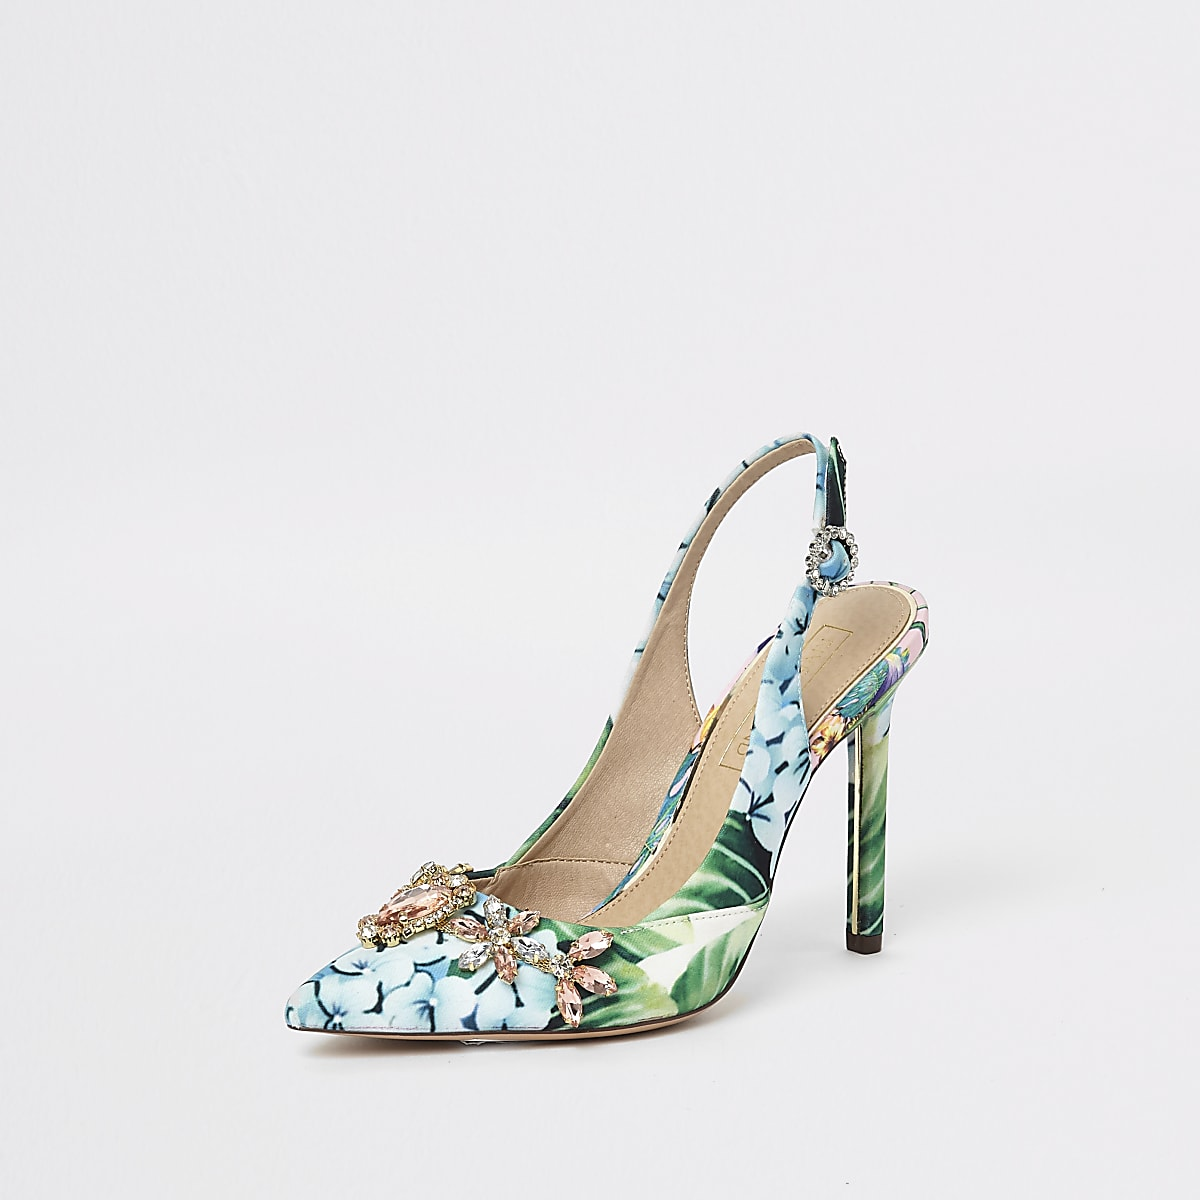 a5f8c2712ad Green floral slingback court shoes - Shoes - Shoes   Boots - women